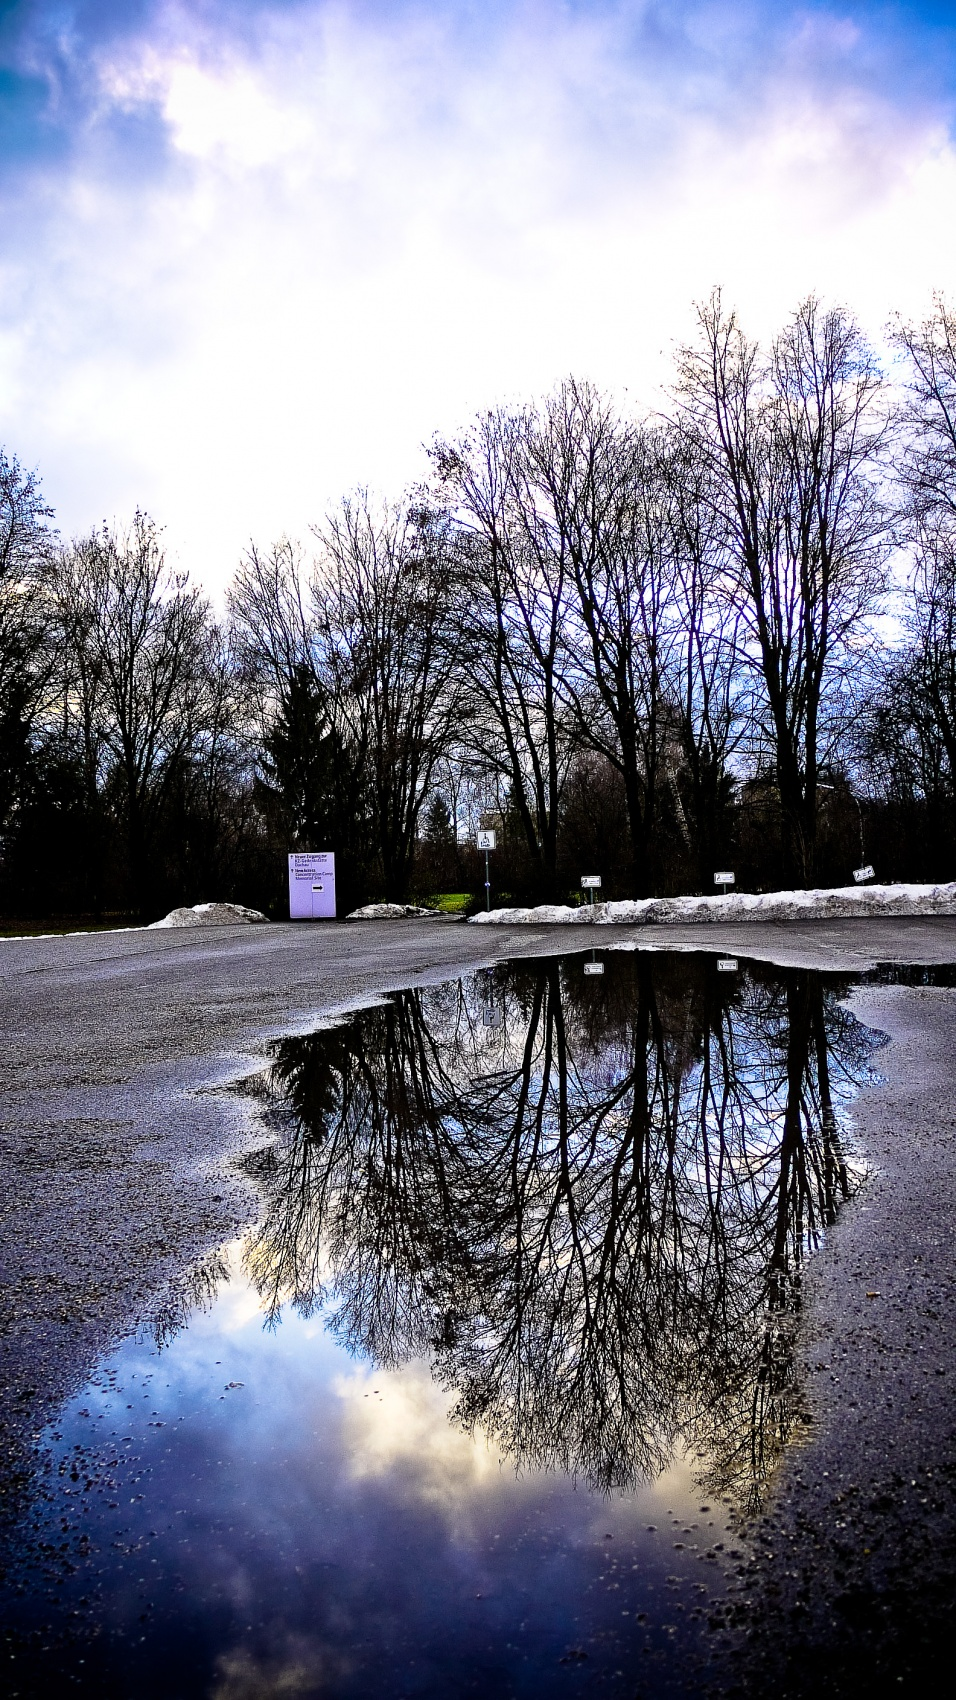 Caught In Time - Dachau Concentration Camp